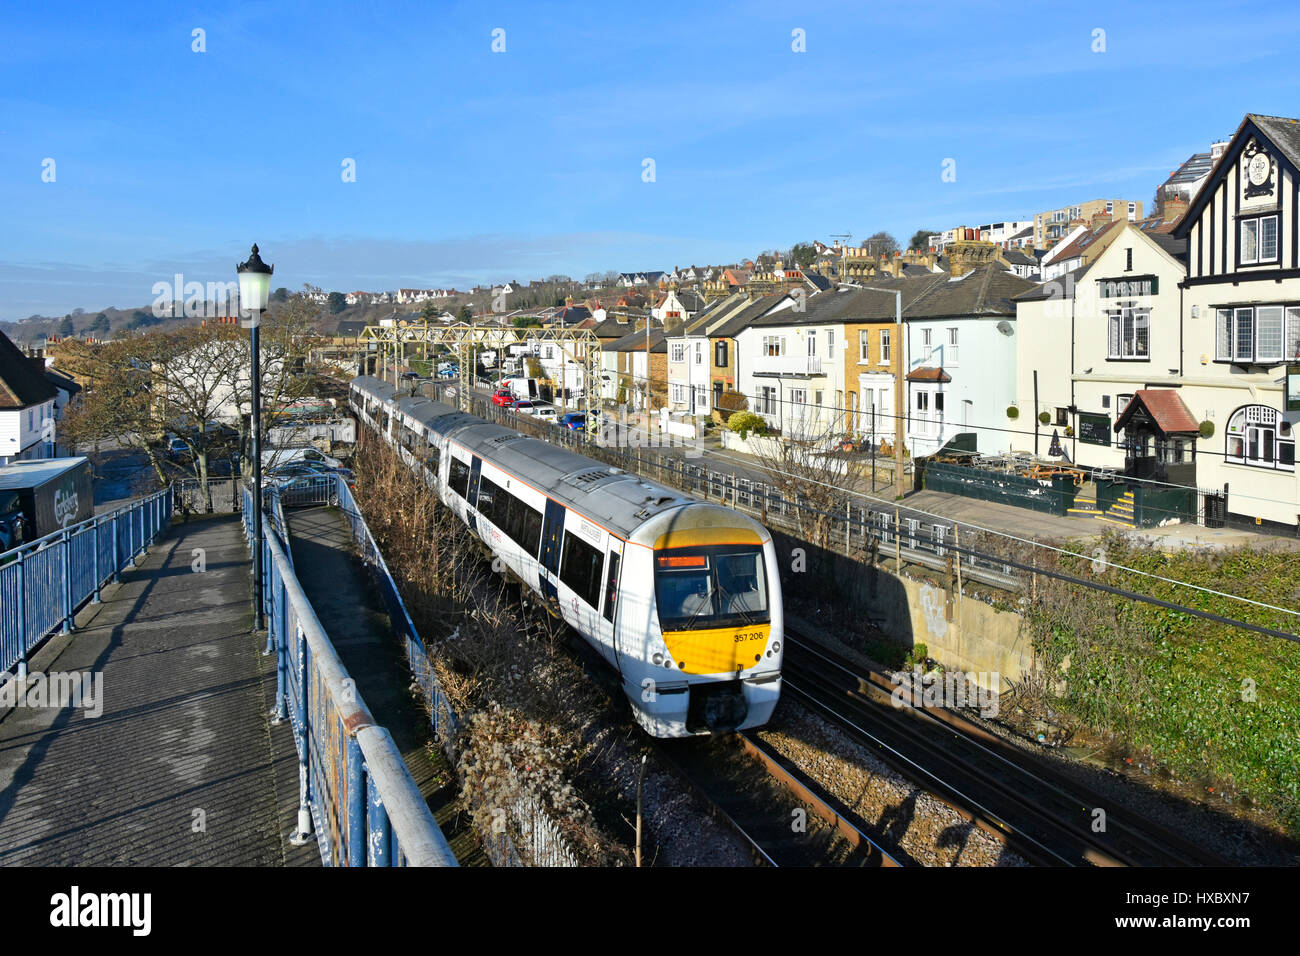 Trenitalia c2c train with National Express markings passing close to houses in residential street in seaside town - Stock Image